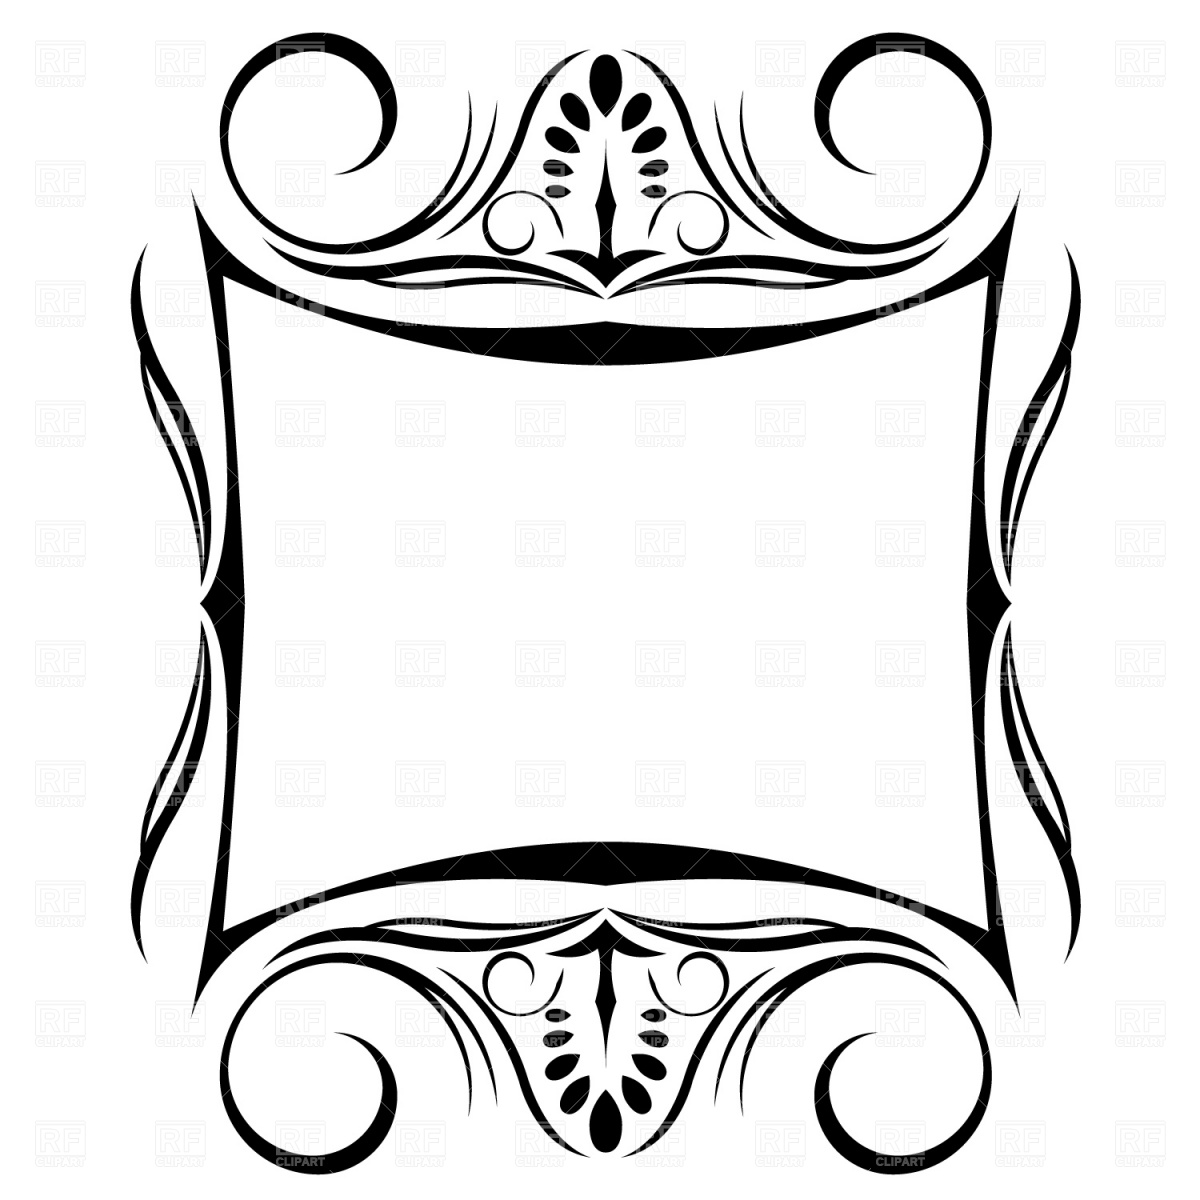 1200x1200 Decorative Frame Royalty Free Vector Clip Art Image